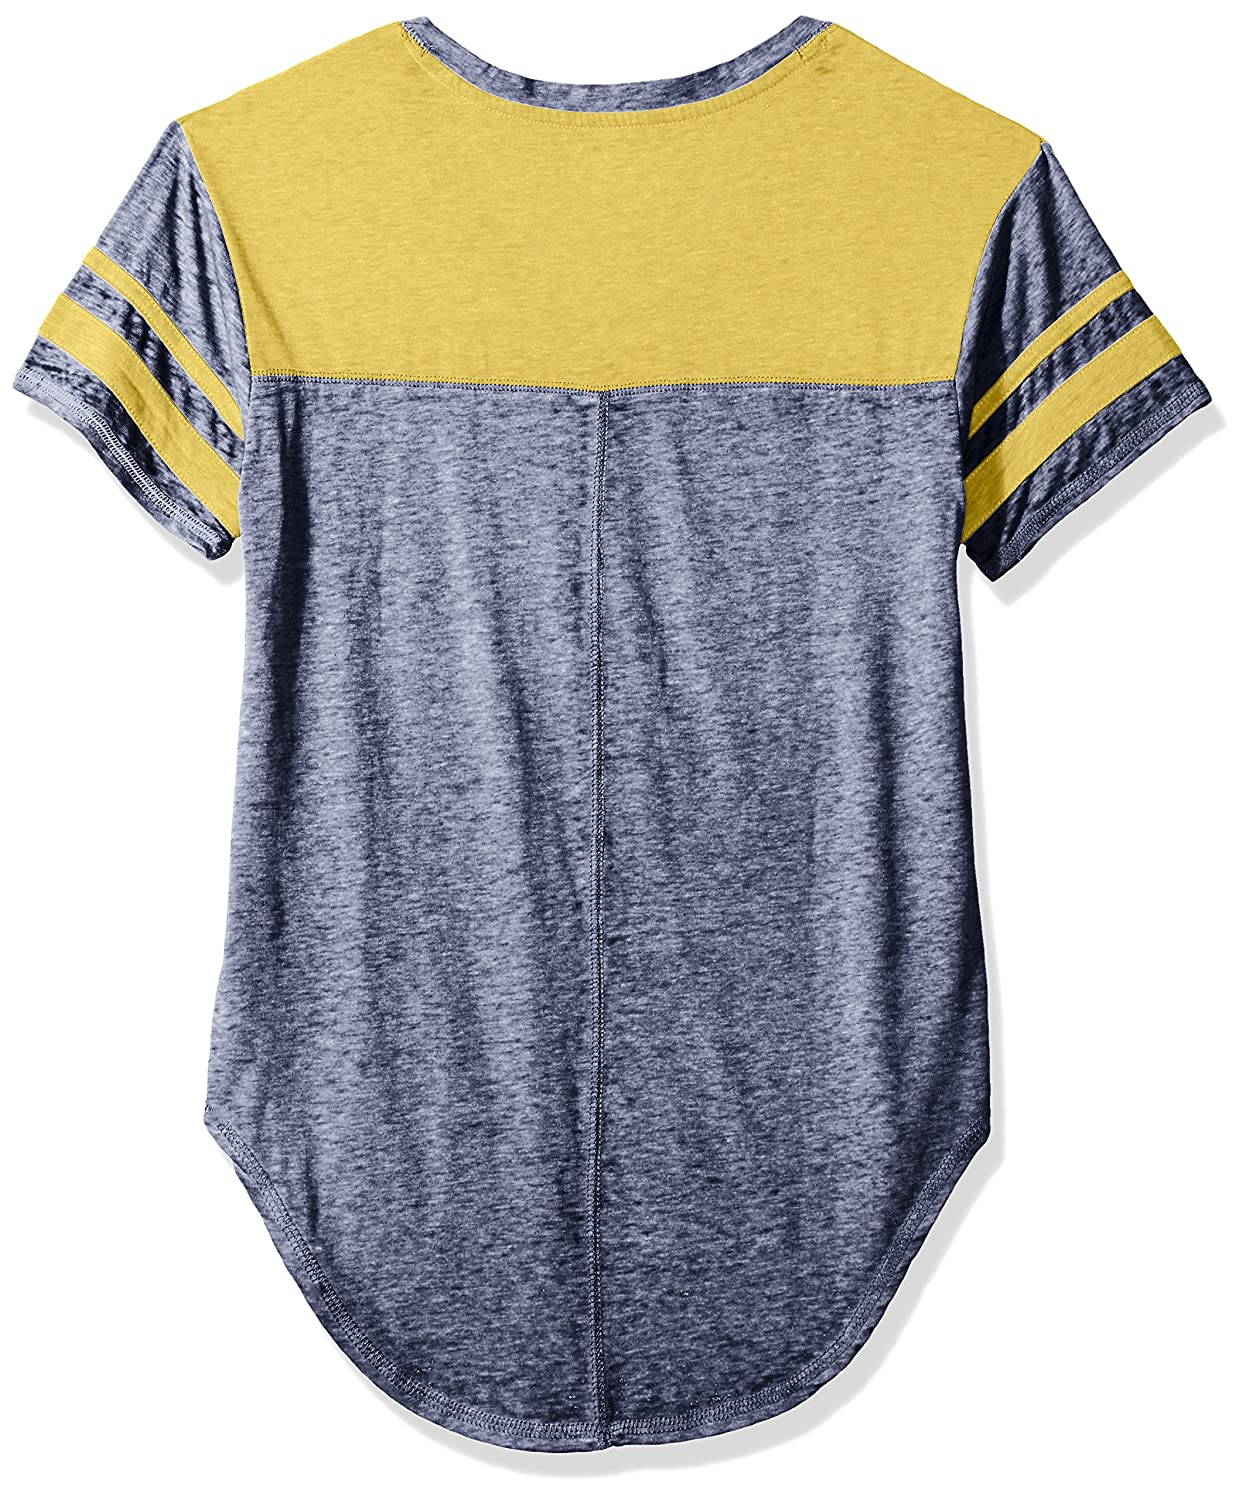 3-5 Small NCAA Michigan Wolverines Juniors Outerstuff Vintage Short Sleeve Football Tee Team Color